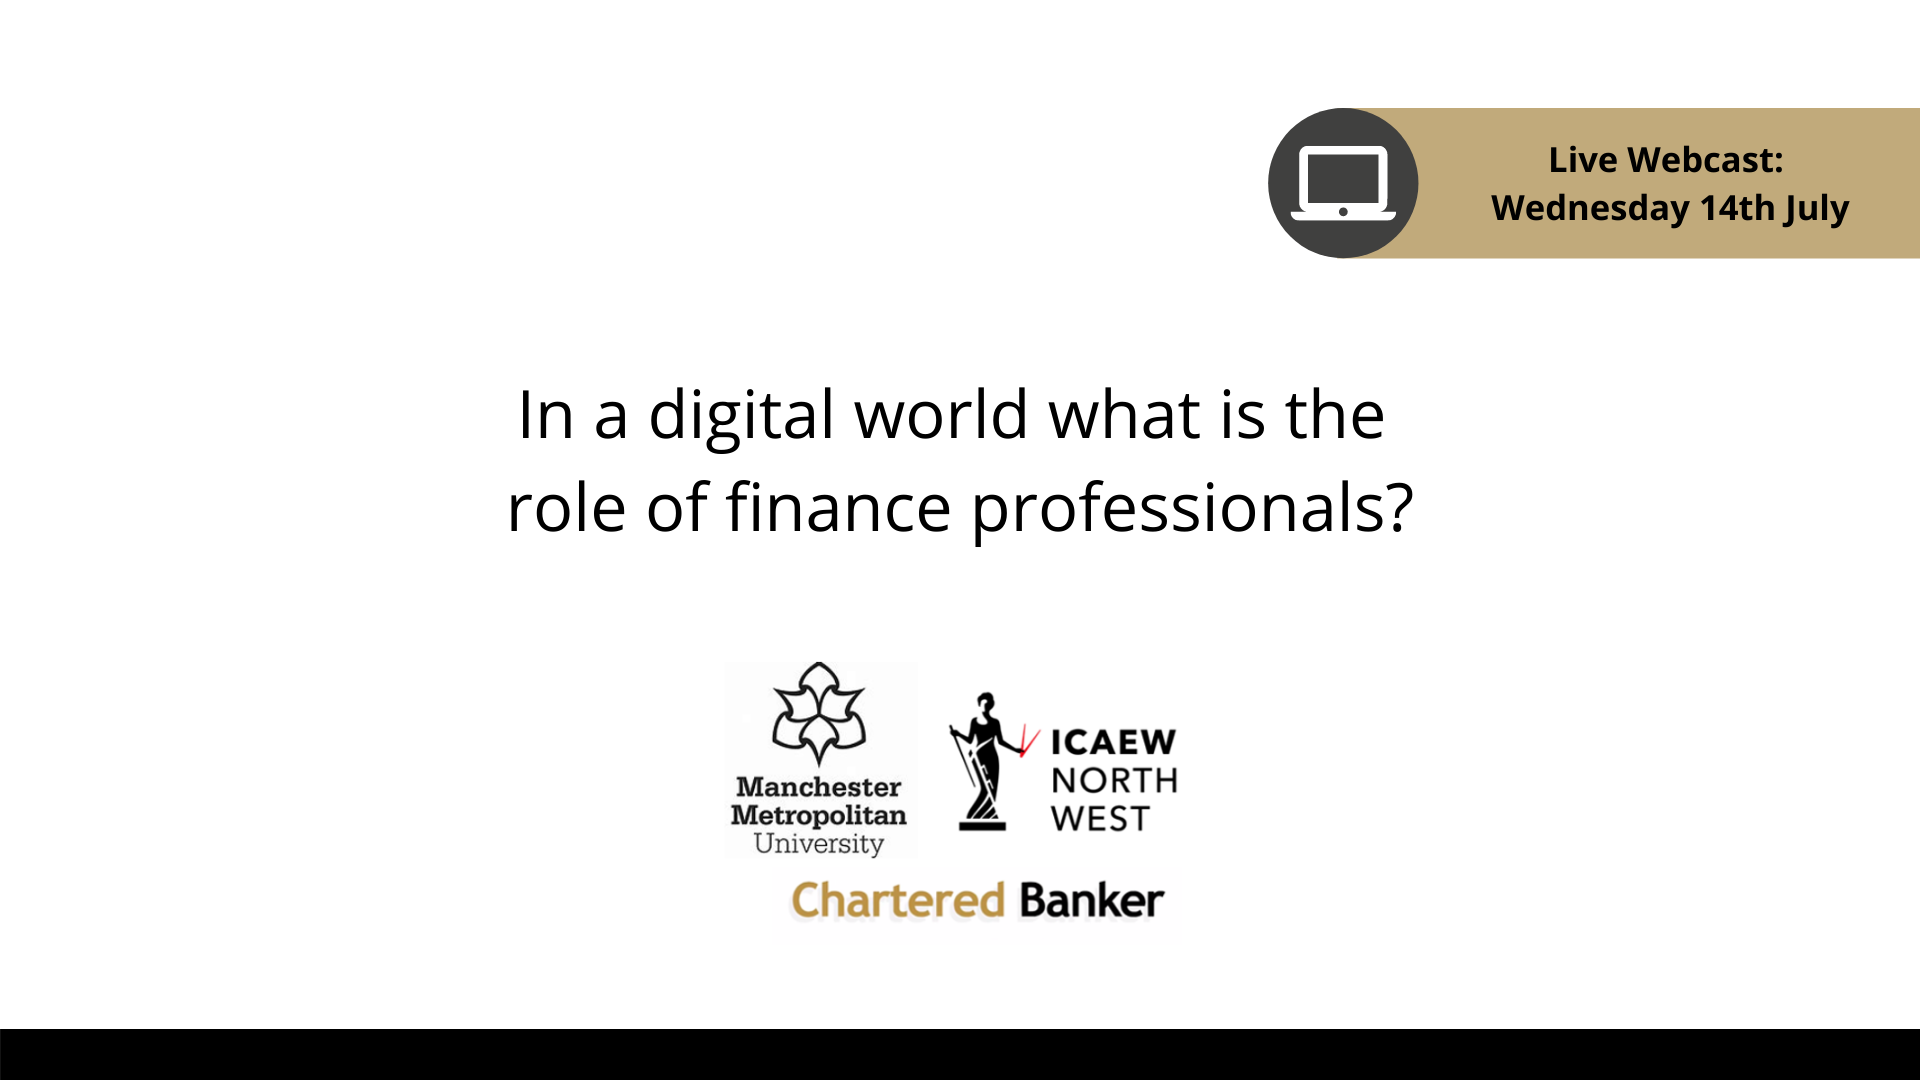 In a digital world what is the role of finance professionals?